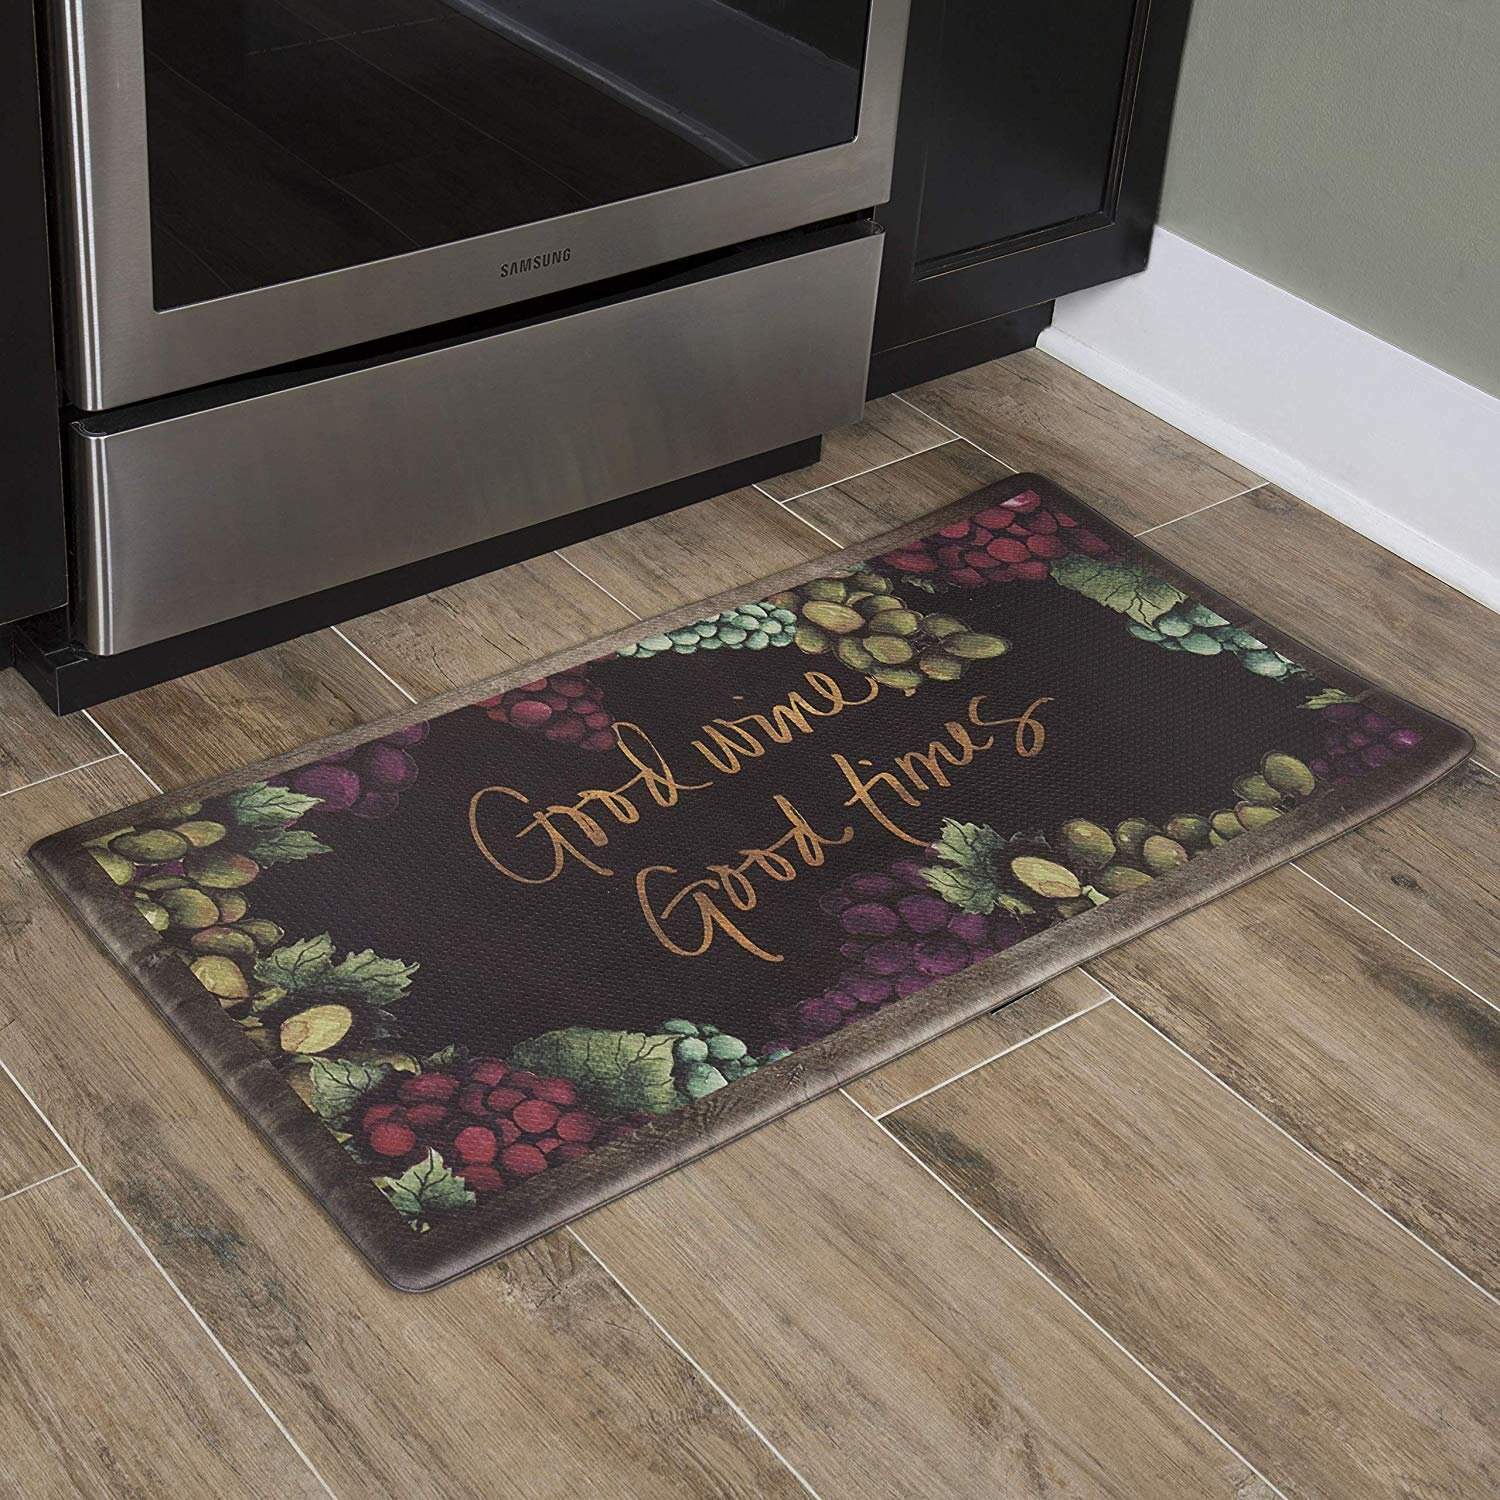 Kitchen Mats You'll in 2019 | Wayfair on memory jar craft, server ideas, memory box, motivational theme ideas, windowless office ideas, remembrance ideas, building ideas, fan ideas, memory lane, apartment marketing ideas, memory boards at target, daily huddle ideas, display ideas, creative apartment leasing ideas, wall of fame ideas, memory trees for funerals, store ideas, memory boards for funerals, diy business ideas, magnet ideas,